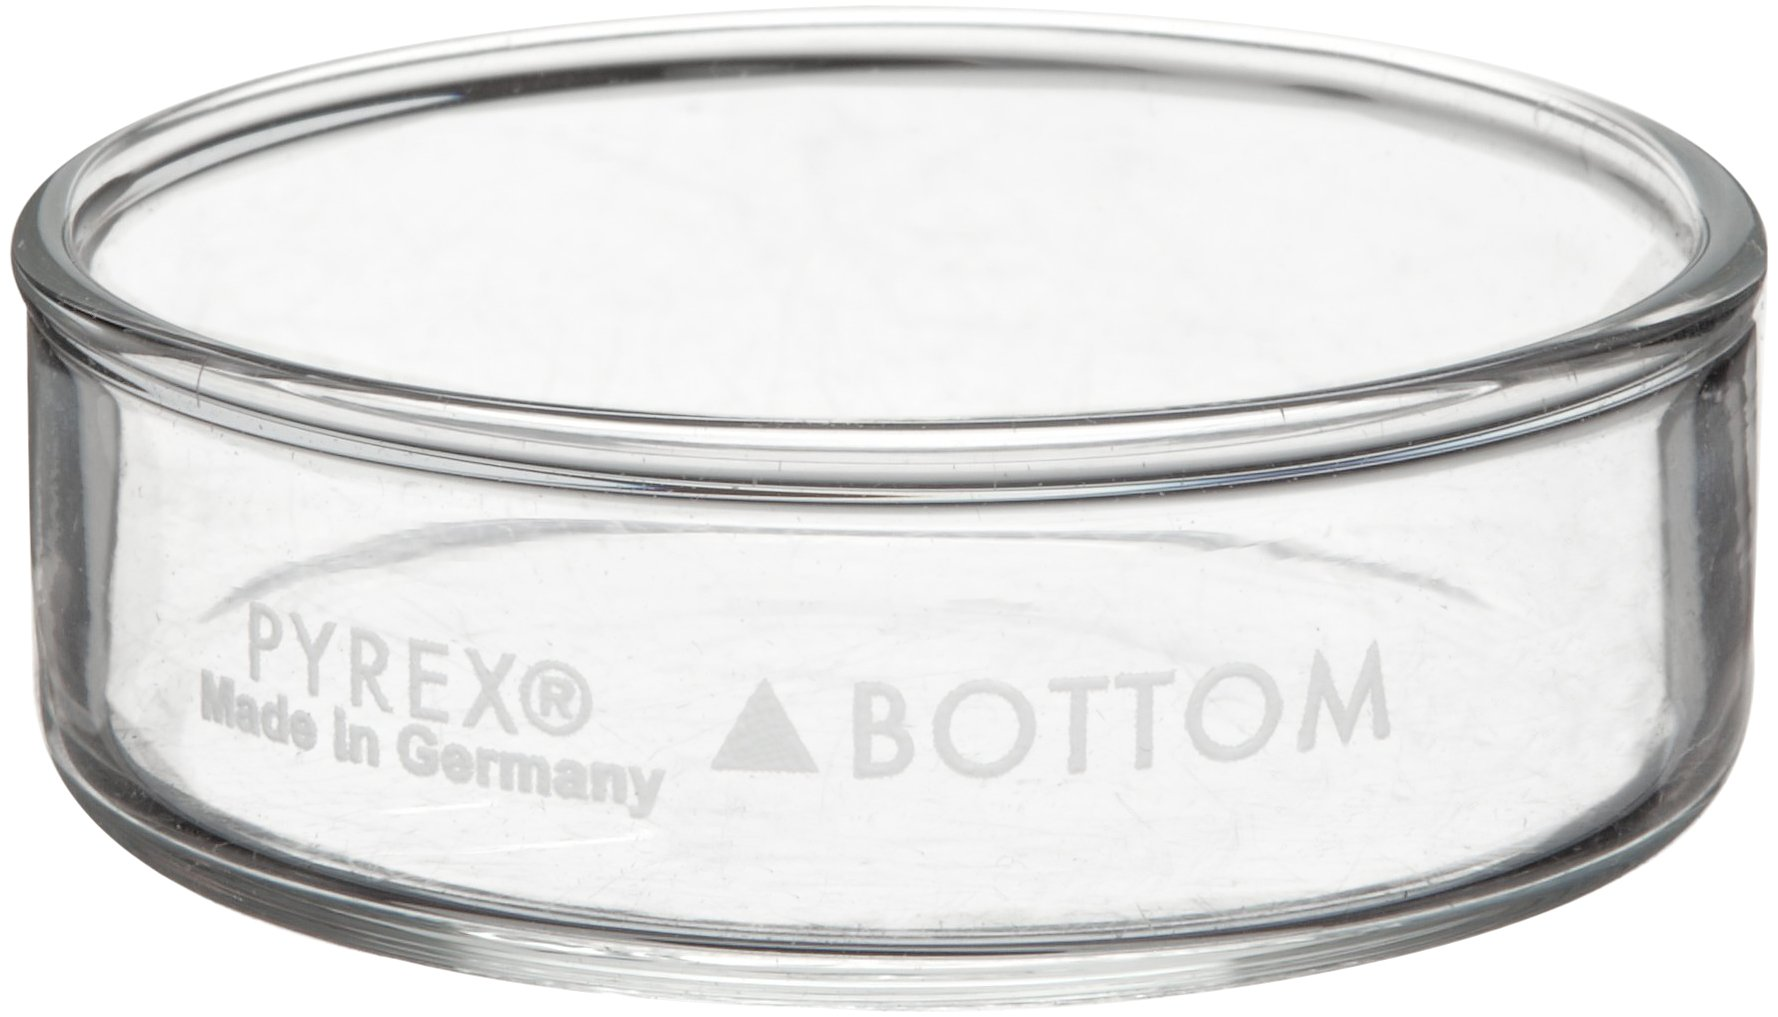 Corning Pyrex Borosilicate Glass Petri Dish Cover Only, 100mm Diameter x 15mm Height (Pack of 12)